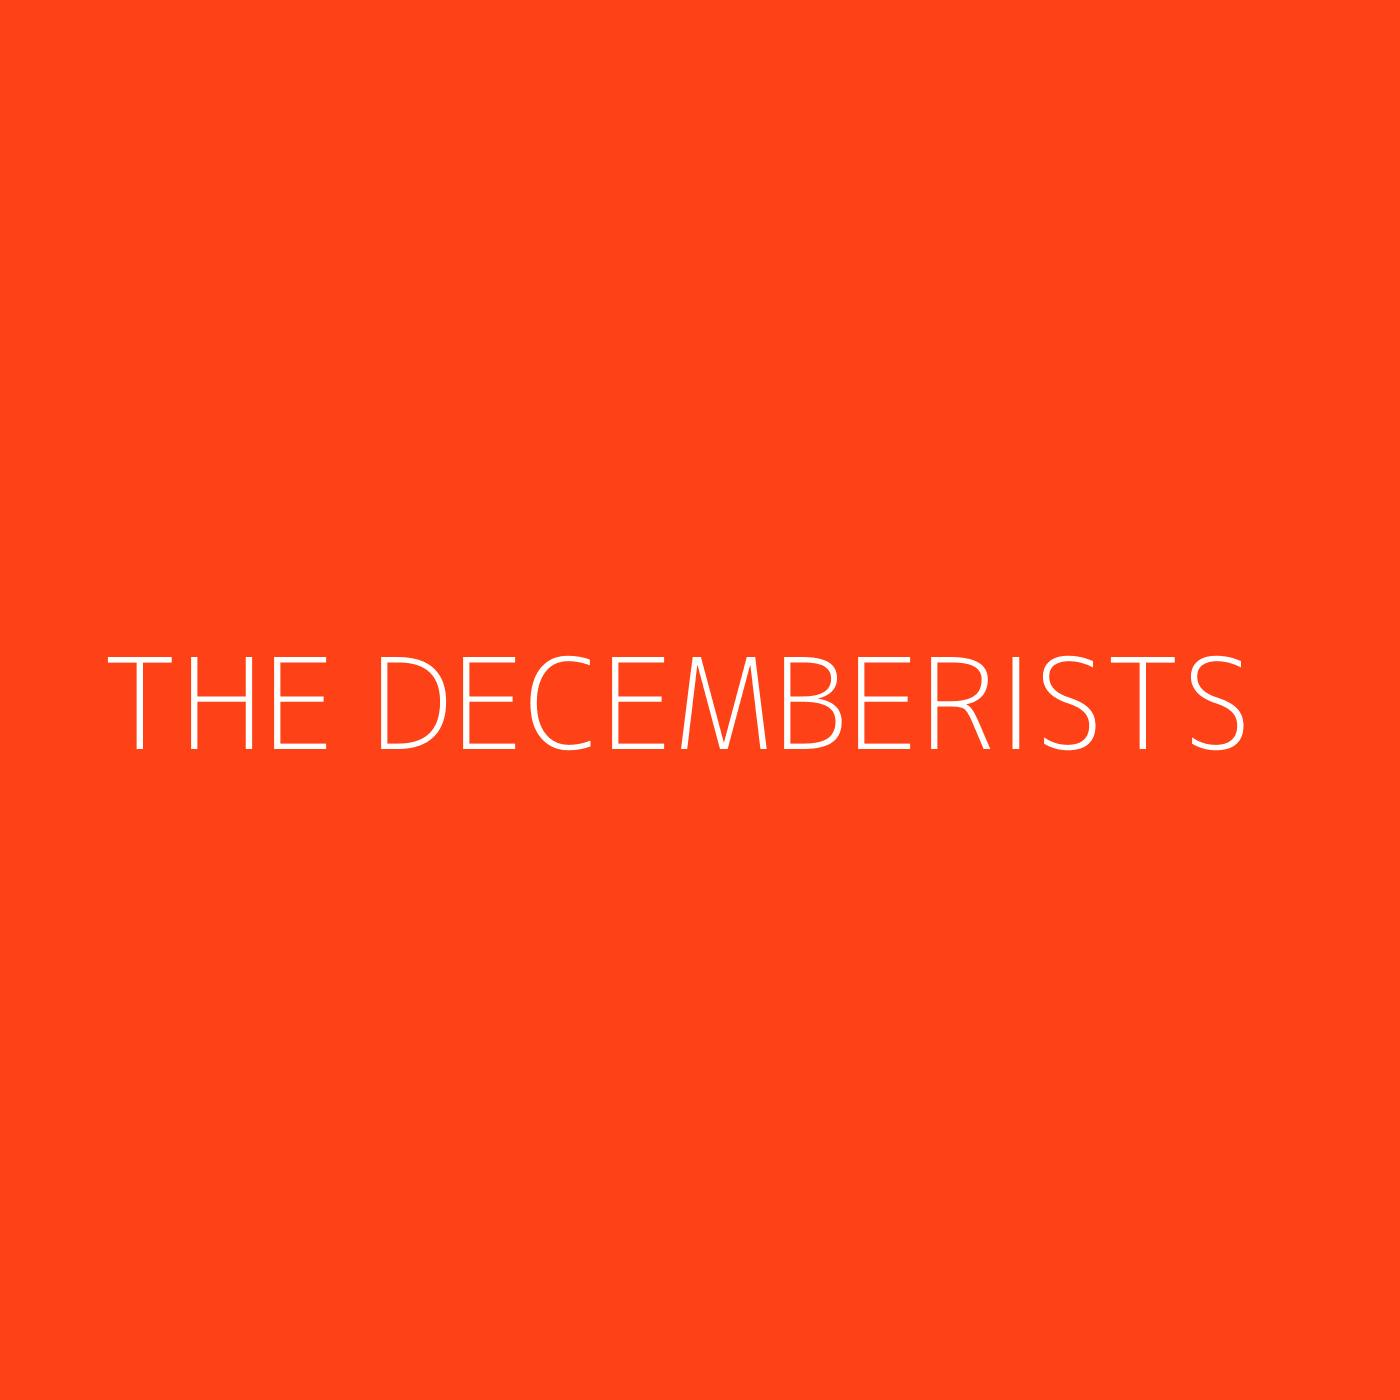 The Decemberists Playlist Artwork